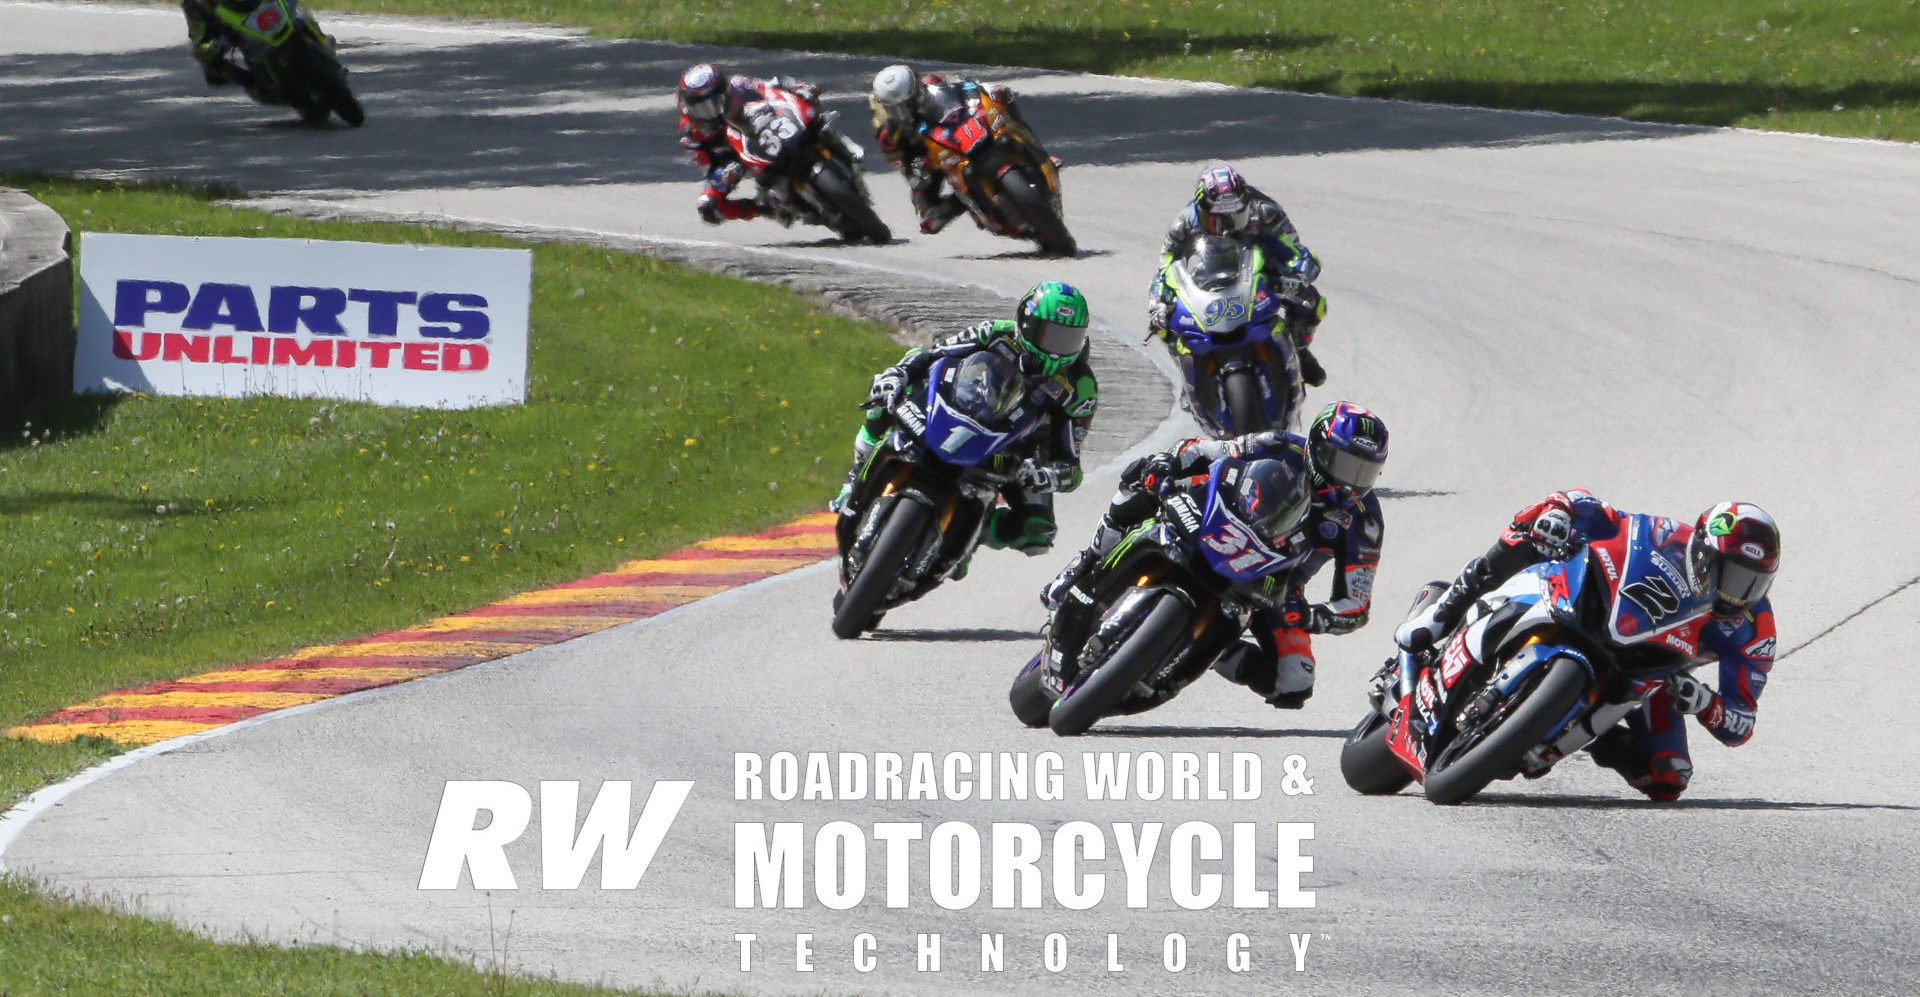 Josh Herrin (2) shows Garrett Gerloff (31), Cameron Beaubier (1), JD Beach (95), Mathew Scholtz (11), Kyle Wyman (33), and Cameron Petersen (45) the way from Canada Corner to Turn 13 and onto the final turn at Road America during MotoAmerica Superbike Race Two in 2019. Photo by Brian J. Nelson.